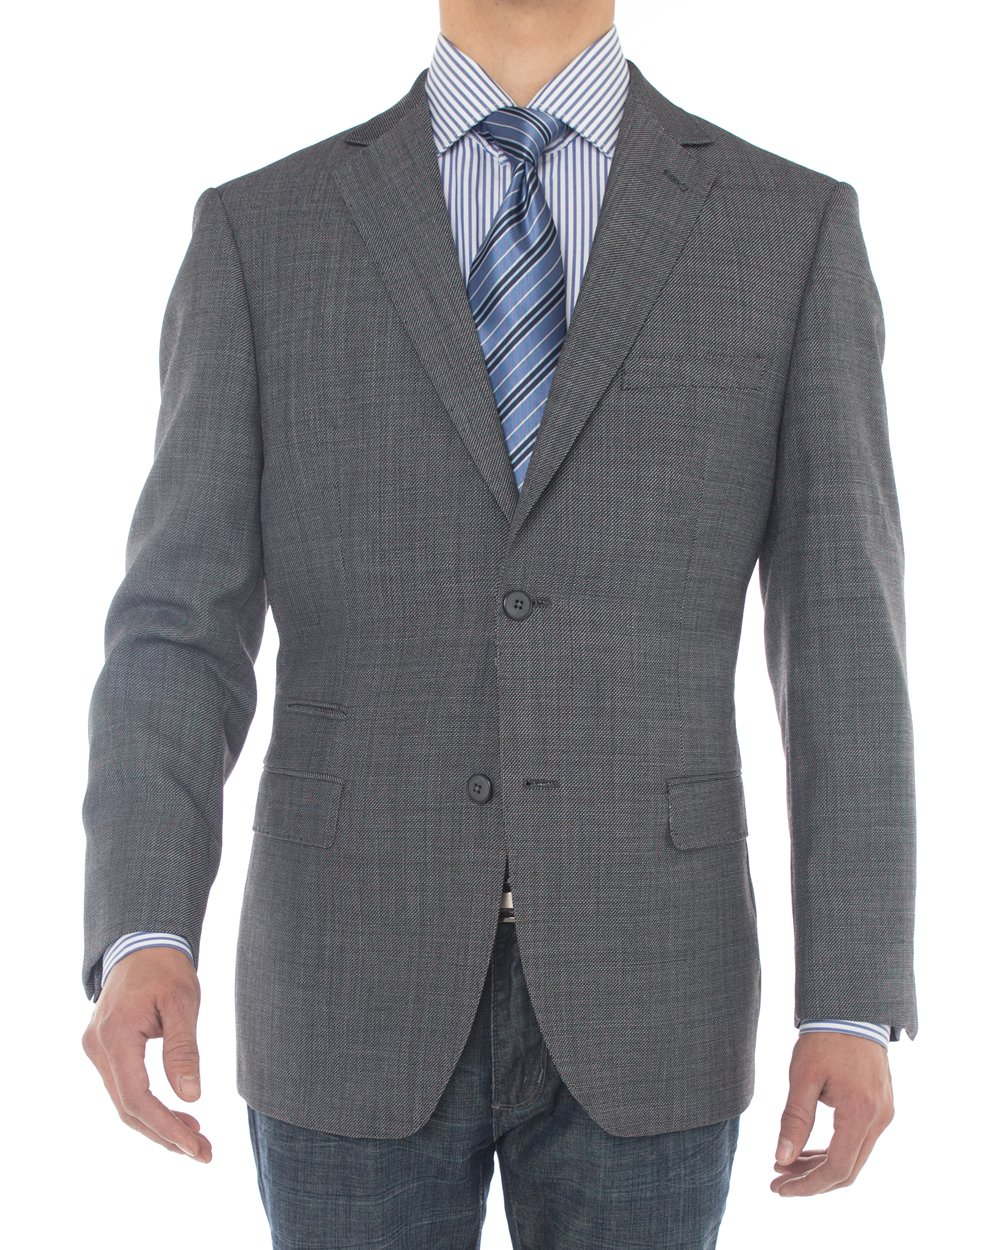 Luciano Natazzi Mens Two Button 160'S Wool Blazer Ticket Pocket Suit Jacket (50 Long US / 60 Long EU, Charcoal Gray)